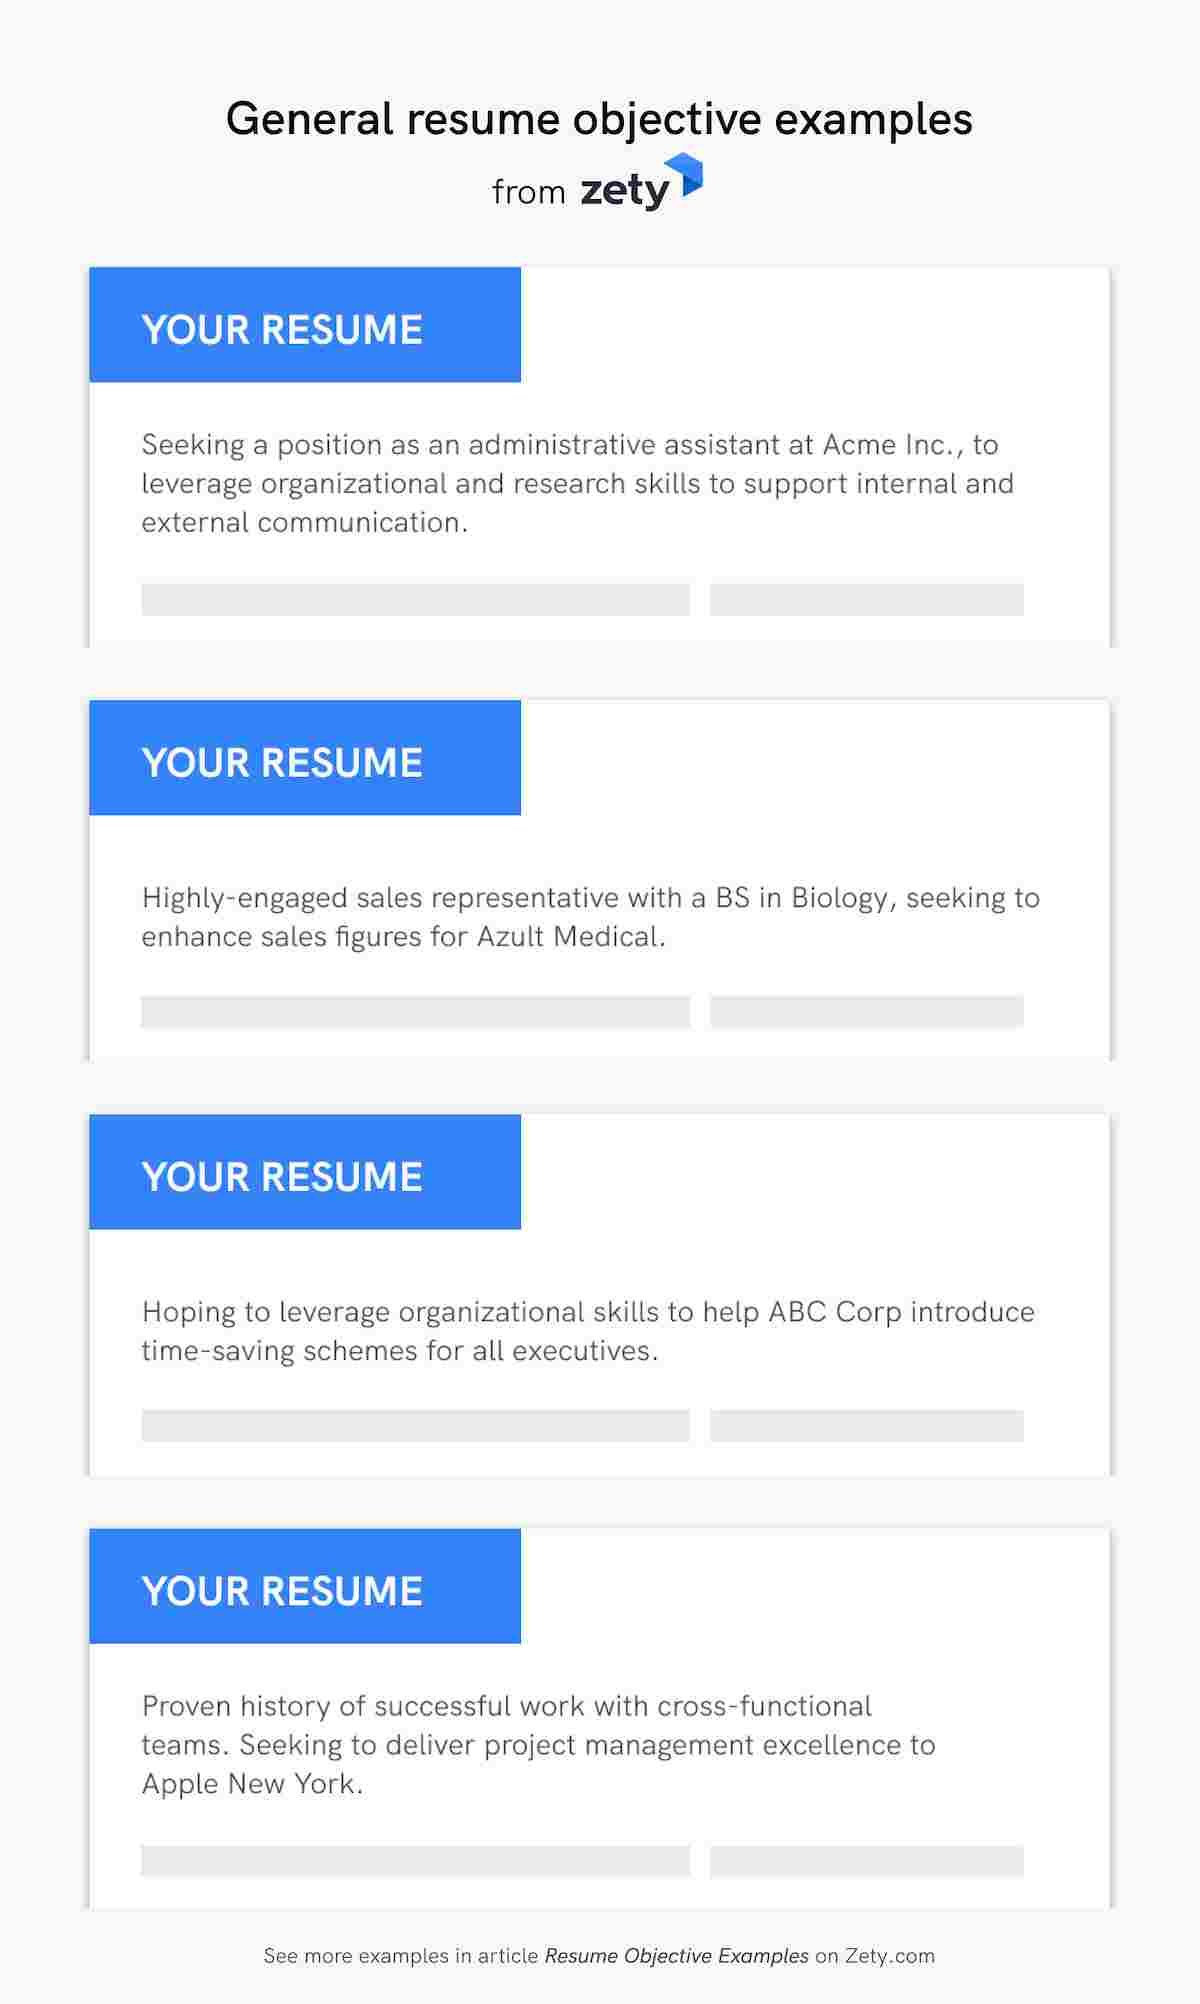 resume objective examples career objectives for all jobs best statements general Resume Best Resume Objective Statements